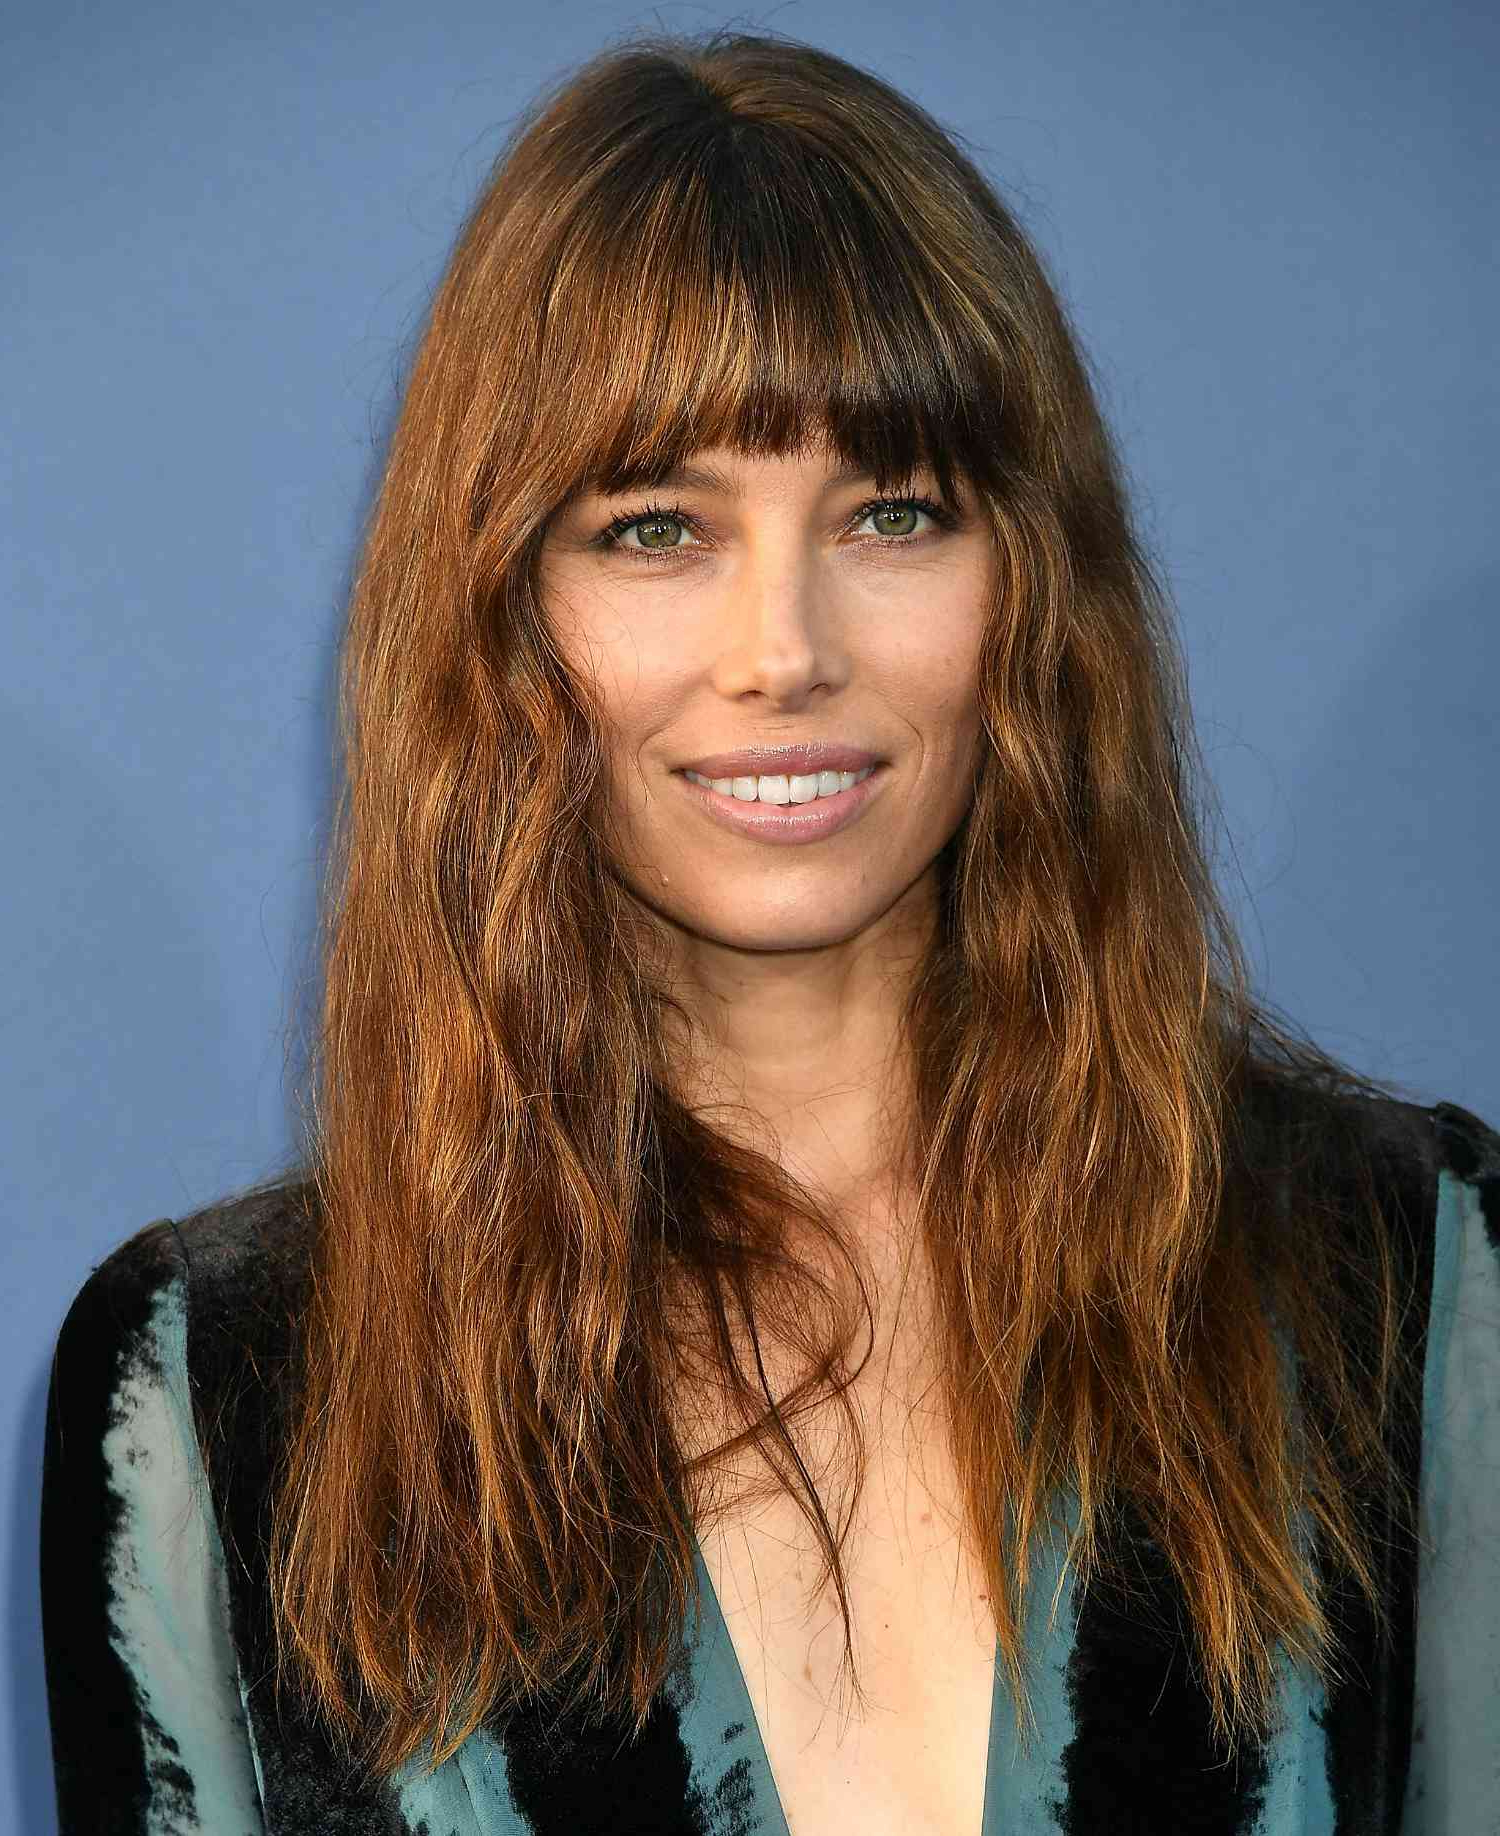 Best And Newest Edgy Face Framing Bangs Hairstyles Within A Gallery Of Hairstyles Featuring Fringe Bangs (View 10 of 20)